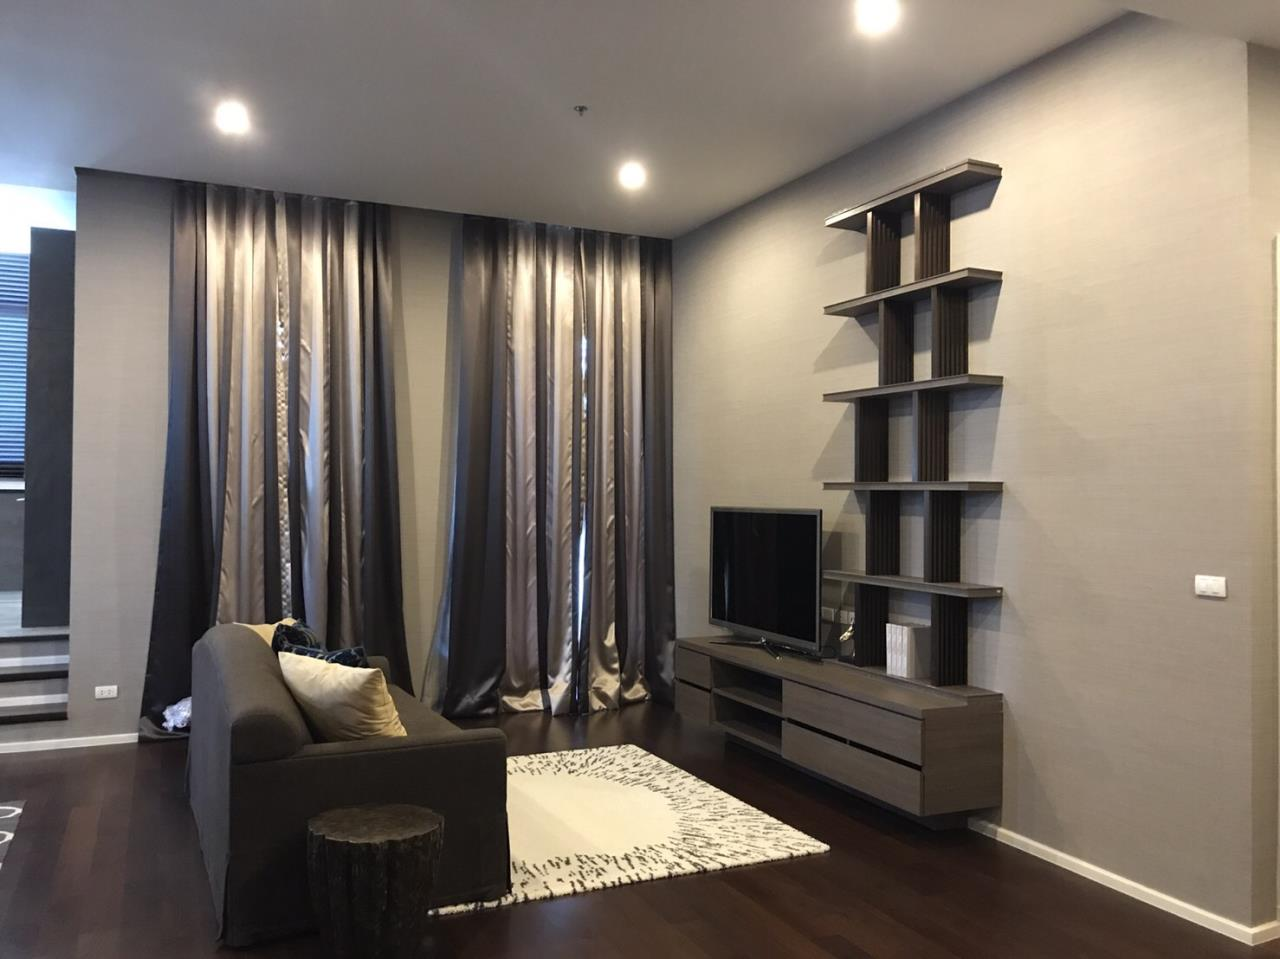 Siam Prop Agency's The Capital Ekamai - Thonglor Condo, 2 bedrooms Penthouse for rent with 4-meter ceiling height 5